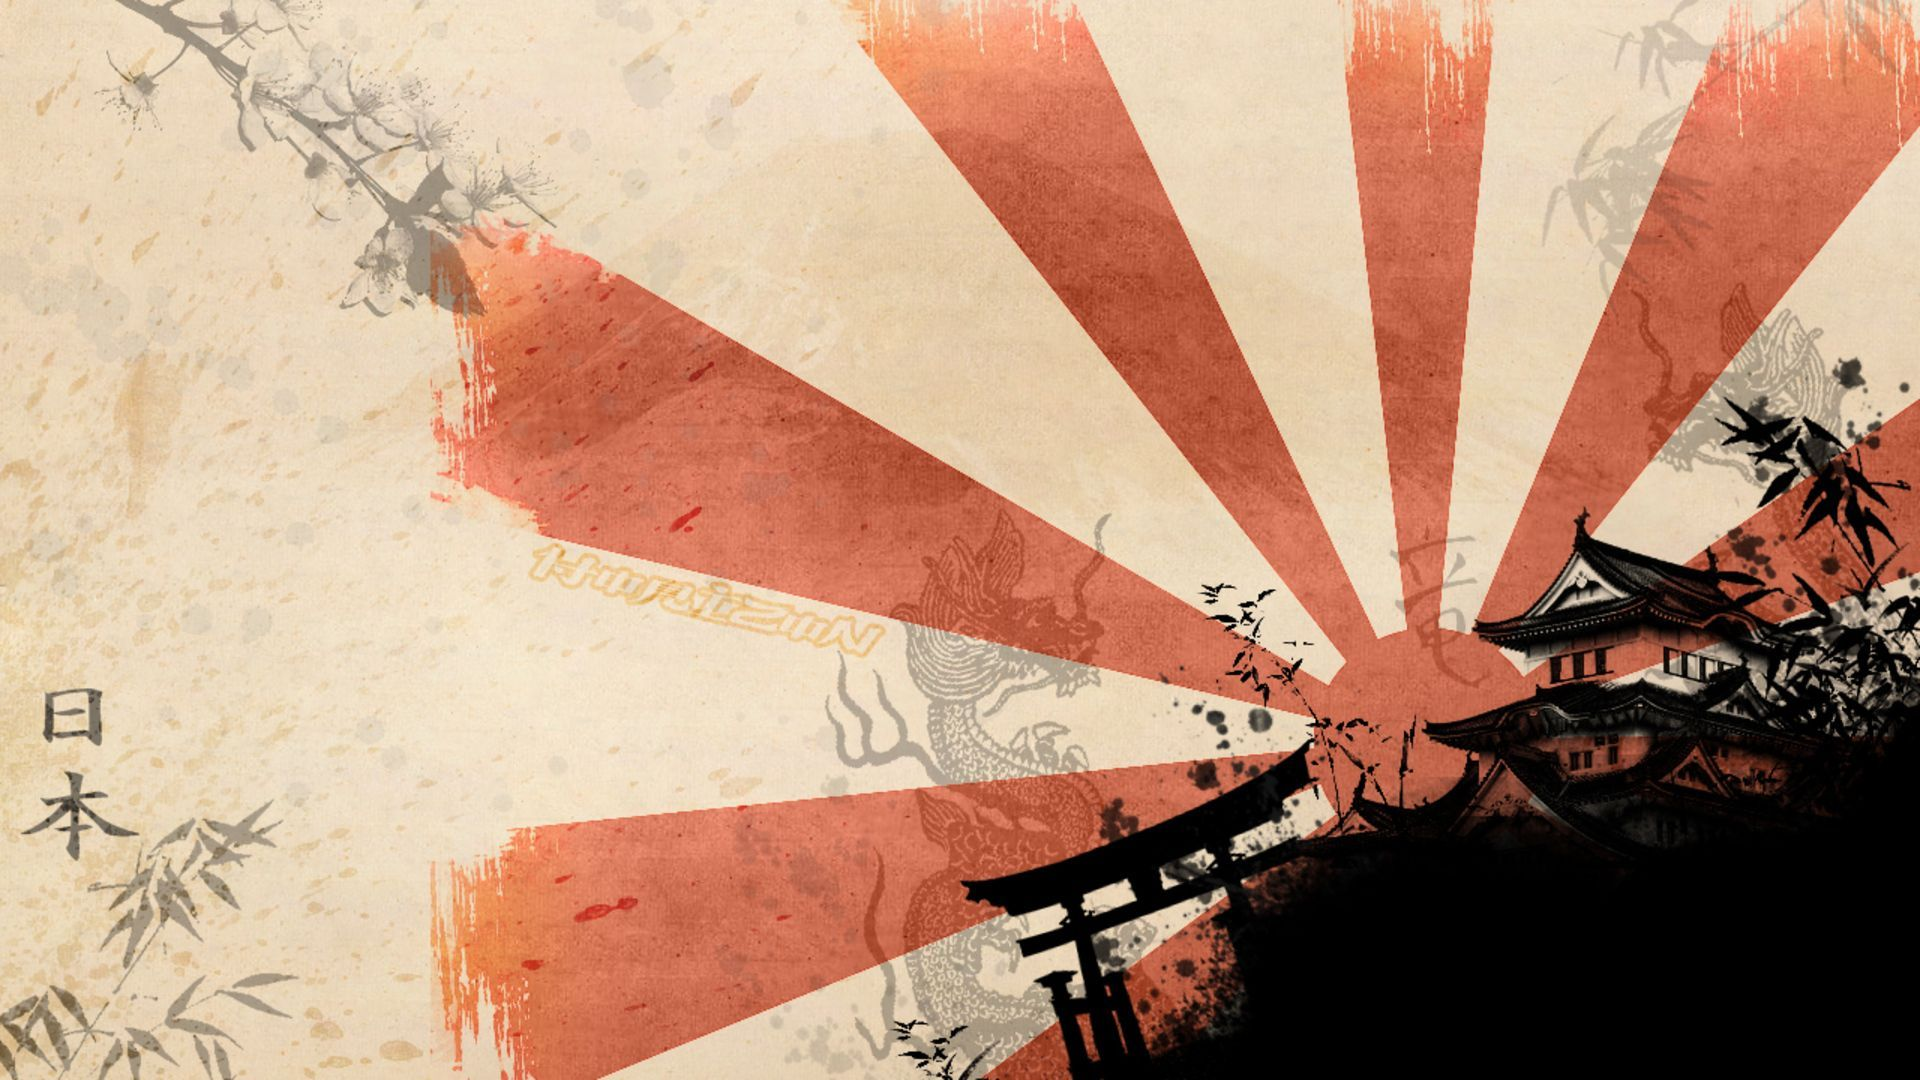 1920x1080 Japanese Wallpaper Desktop Background ~ Sdeerwallpaper ...